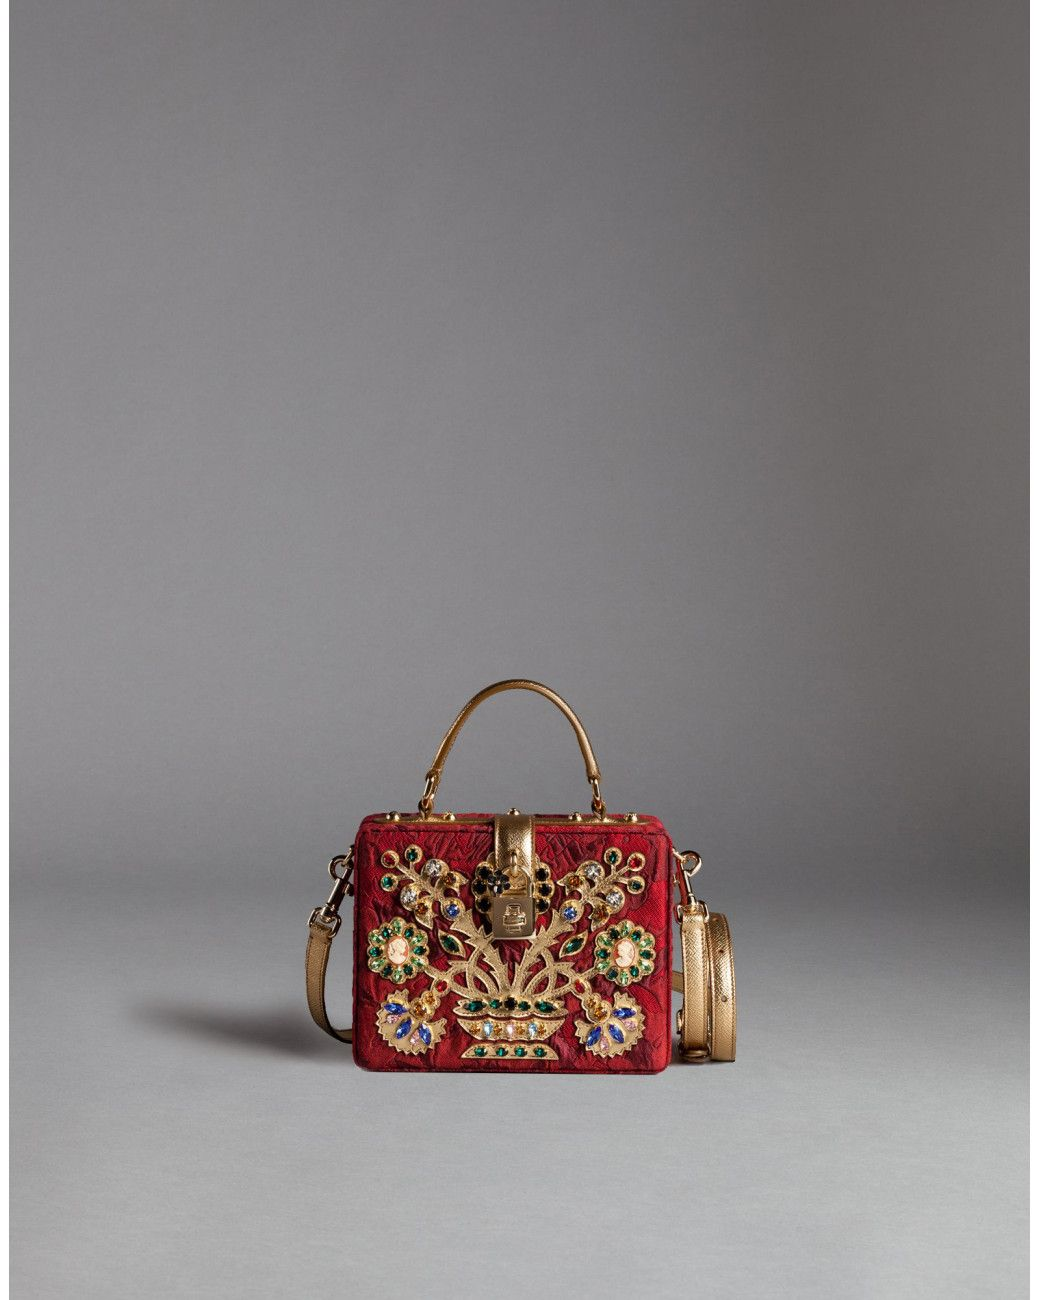 7a11b43429c Dolce   Gabbana Shoulder Bags   Lyst™   designer bags to die for ...